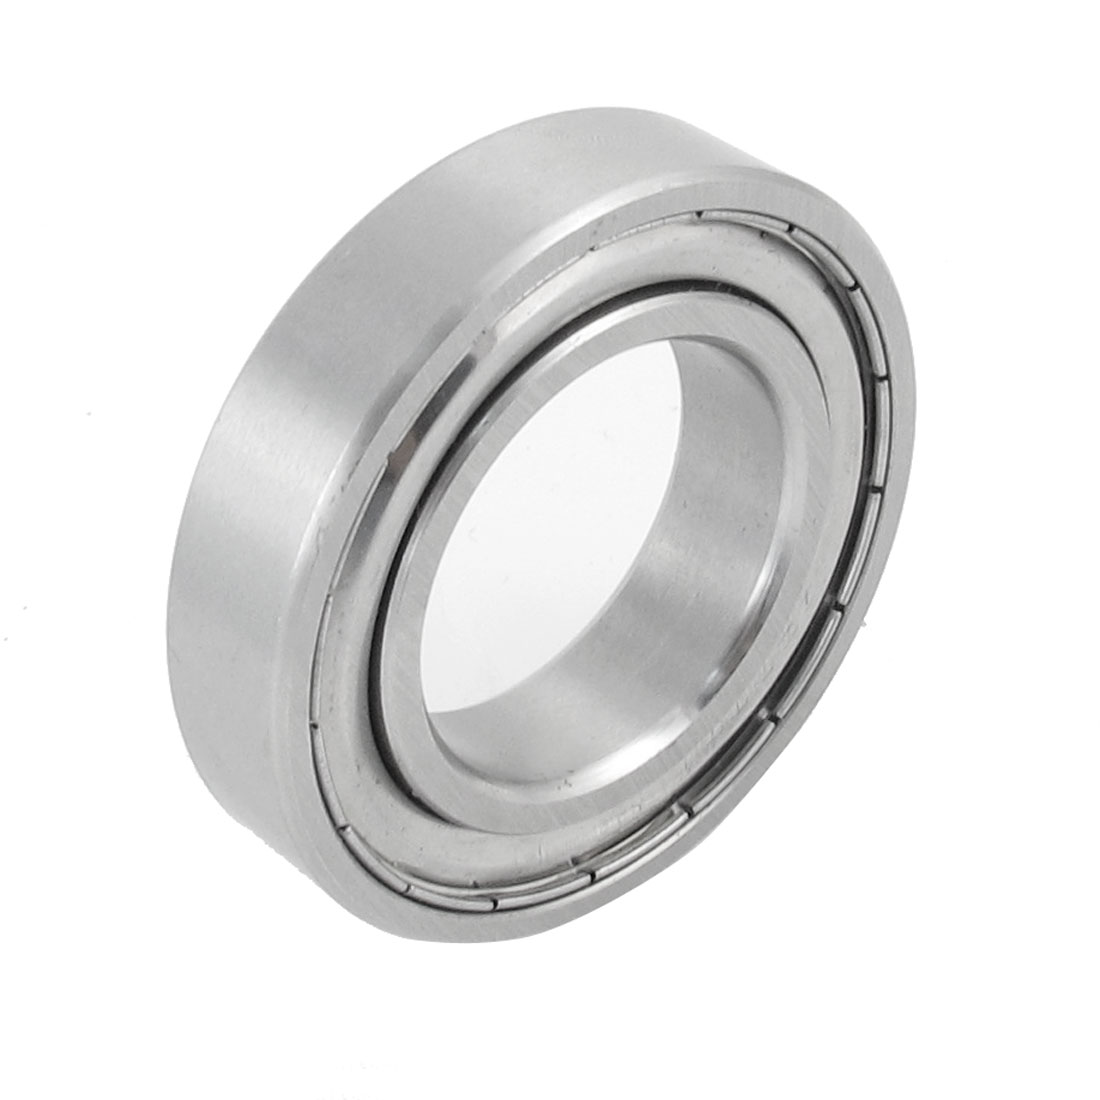 Stainless Steel 22mm x 8mm x 7mm Sealed Deep Groove Ball Bearing